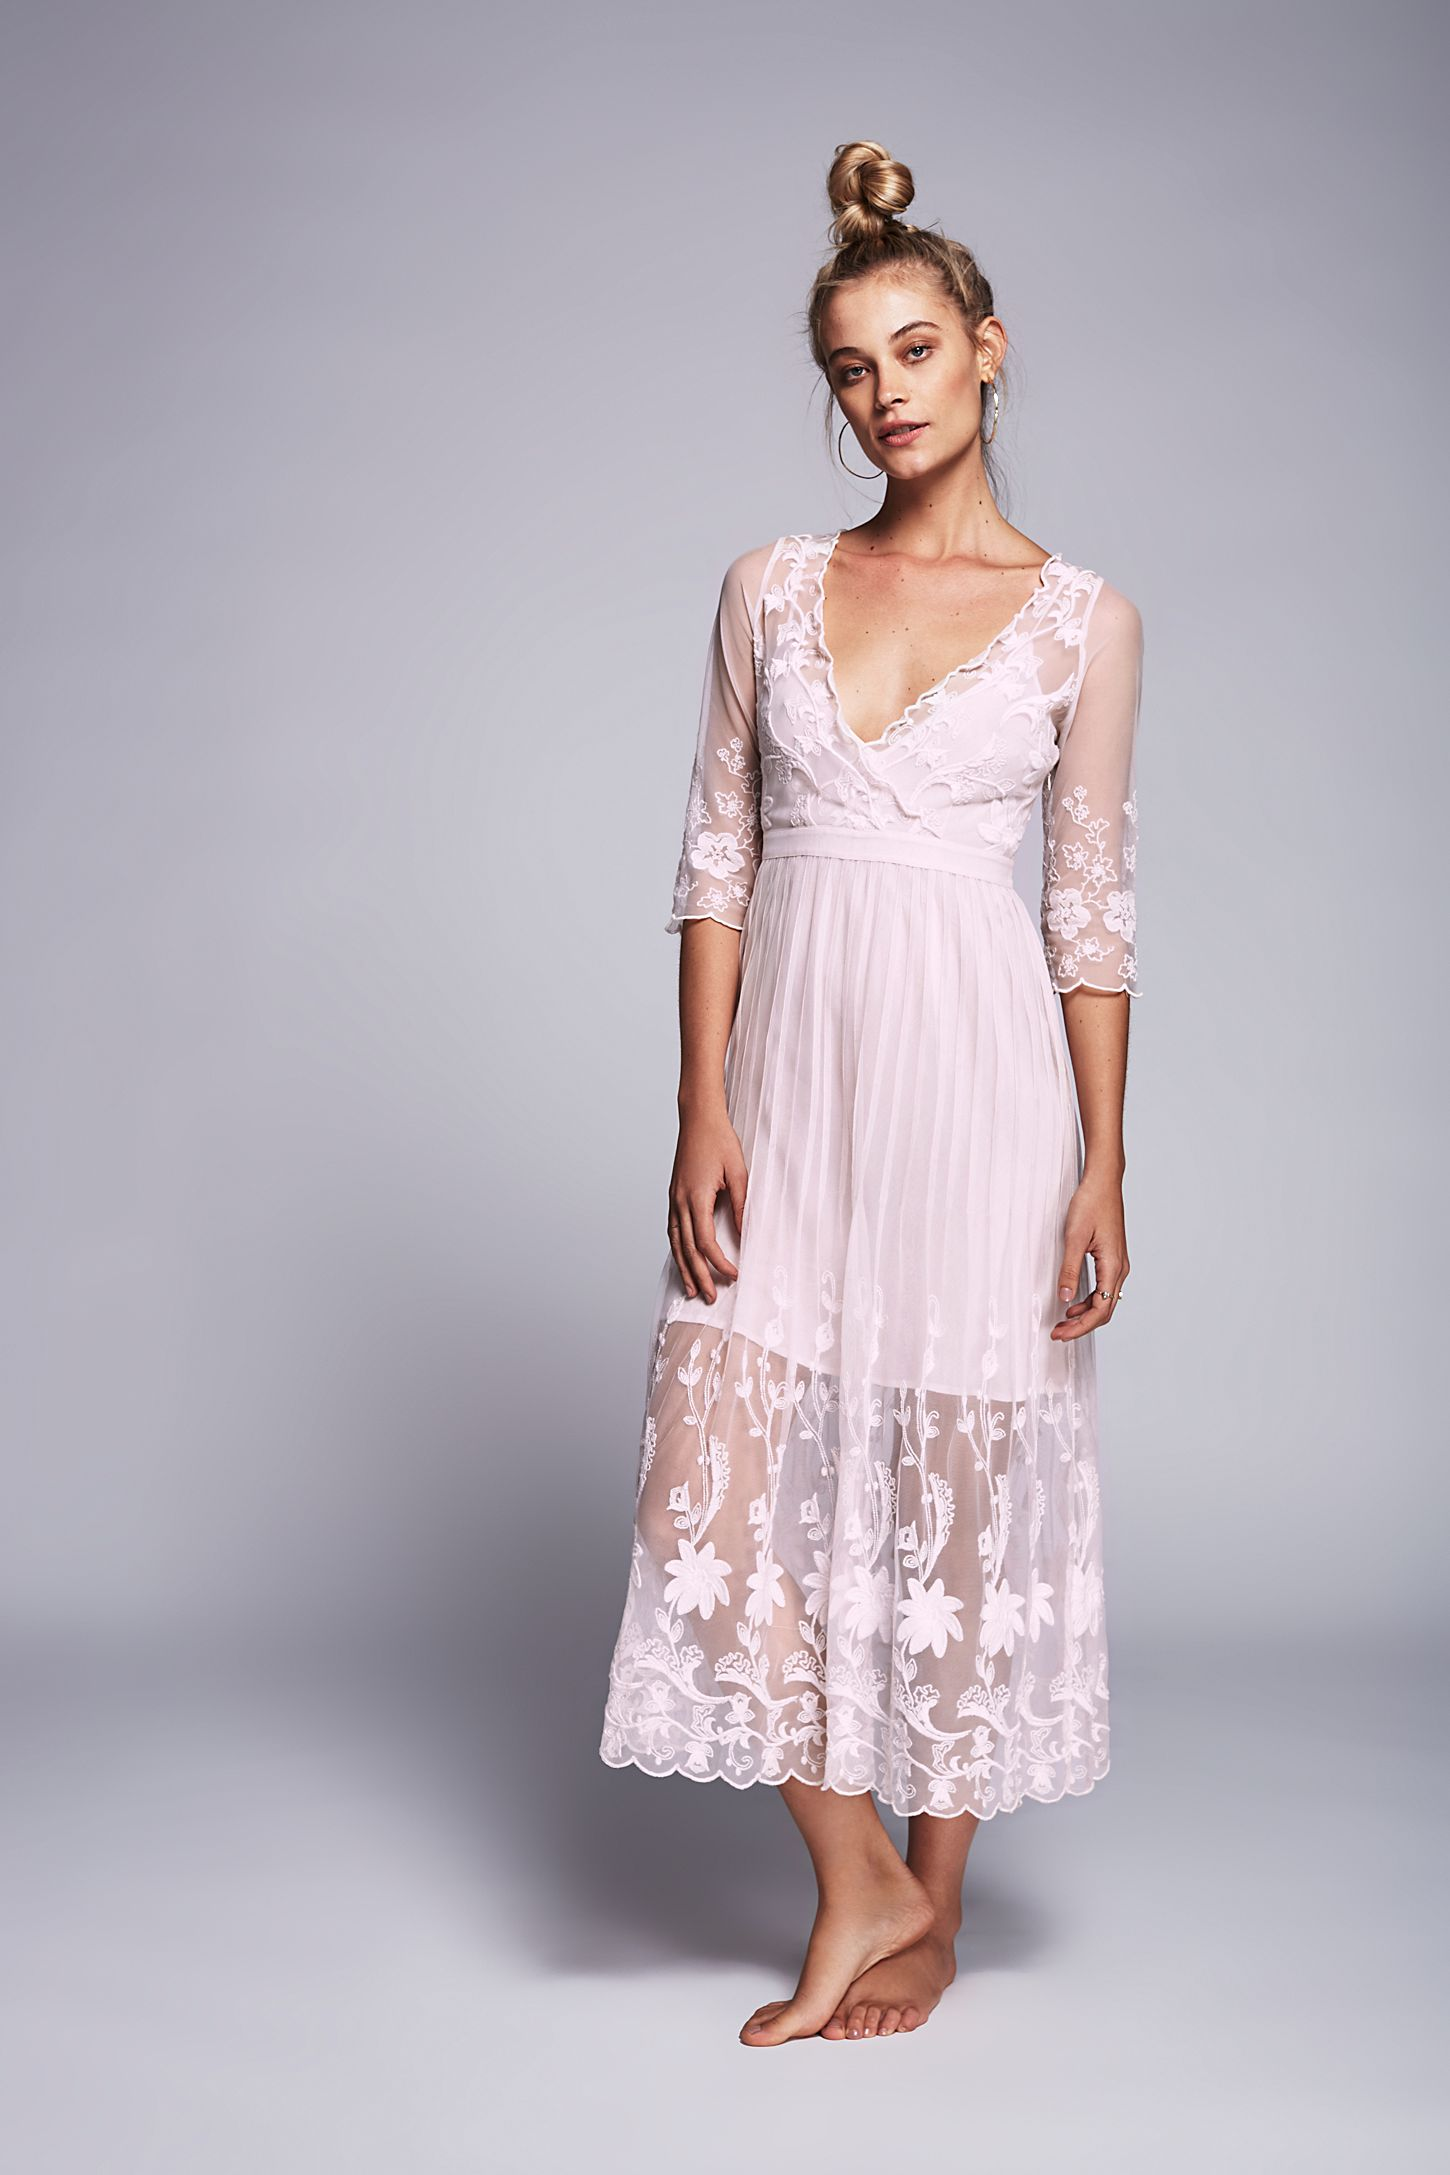 Friends Forever Dress | Free People